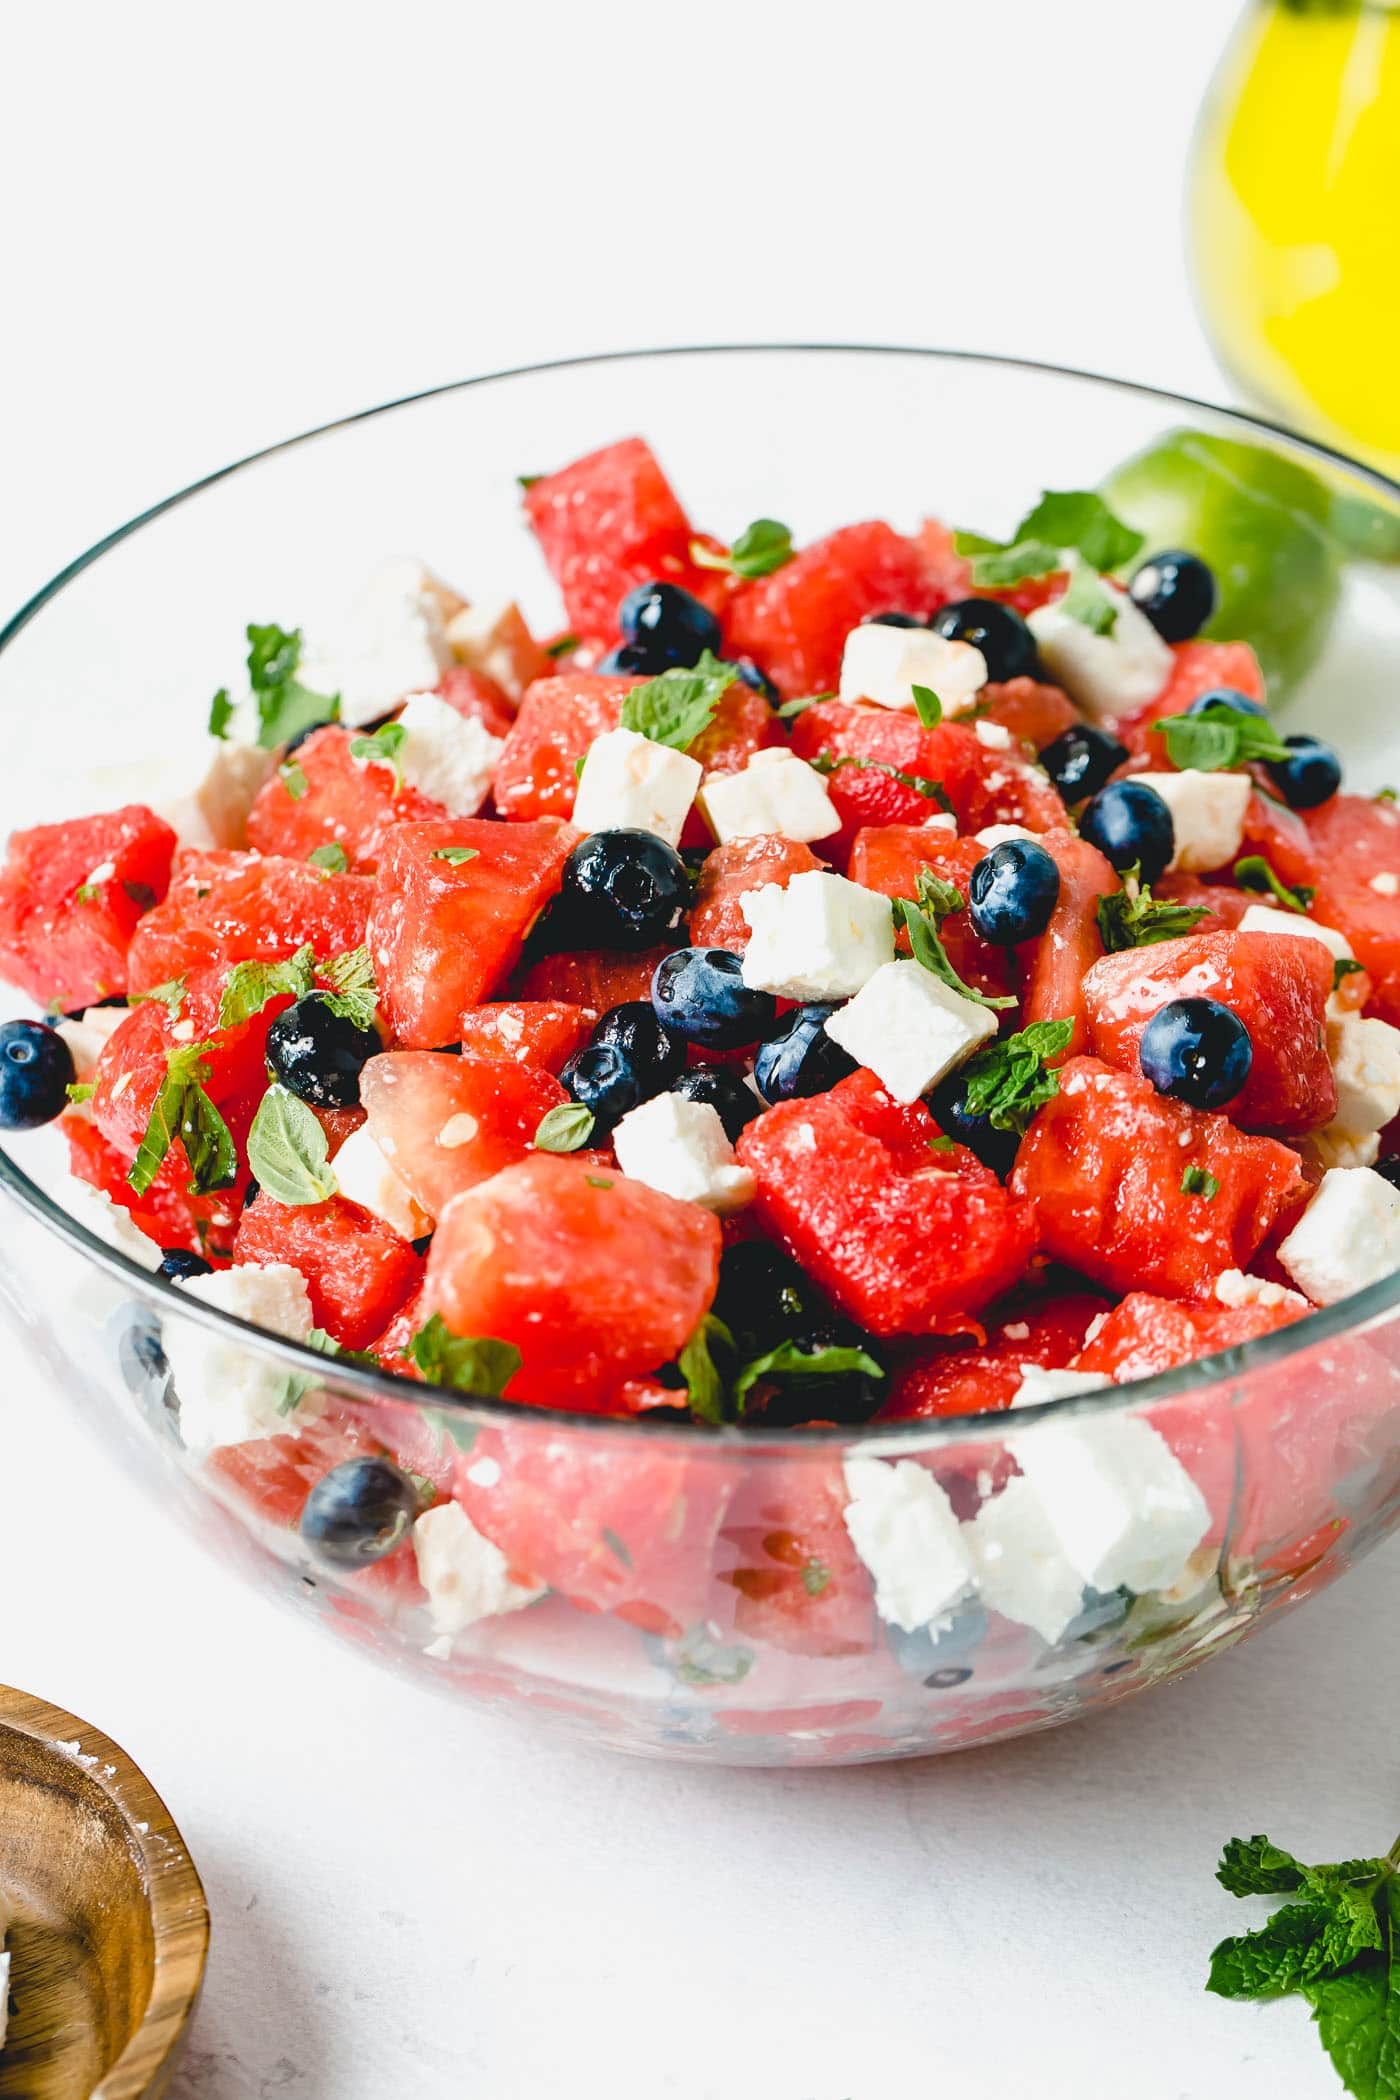 Blueberry feta watermelon salad with feta cheese cubes, fresh basil and mint leaves.